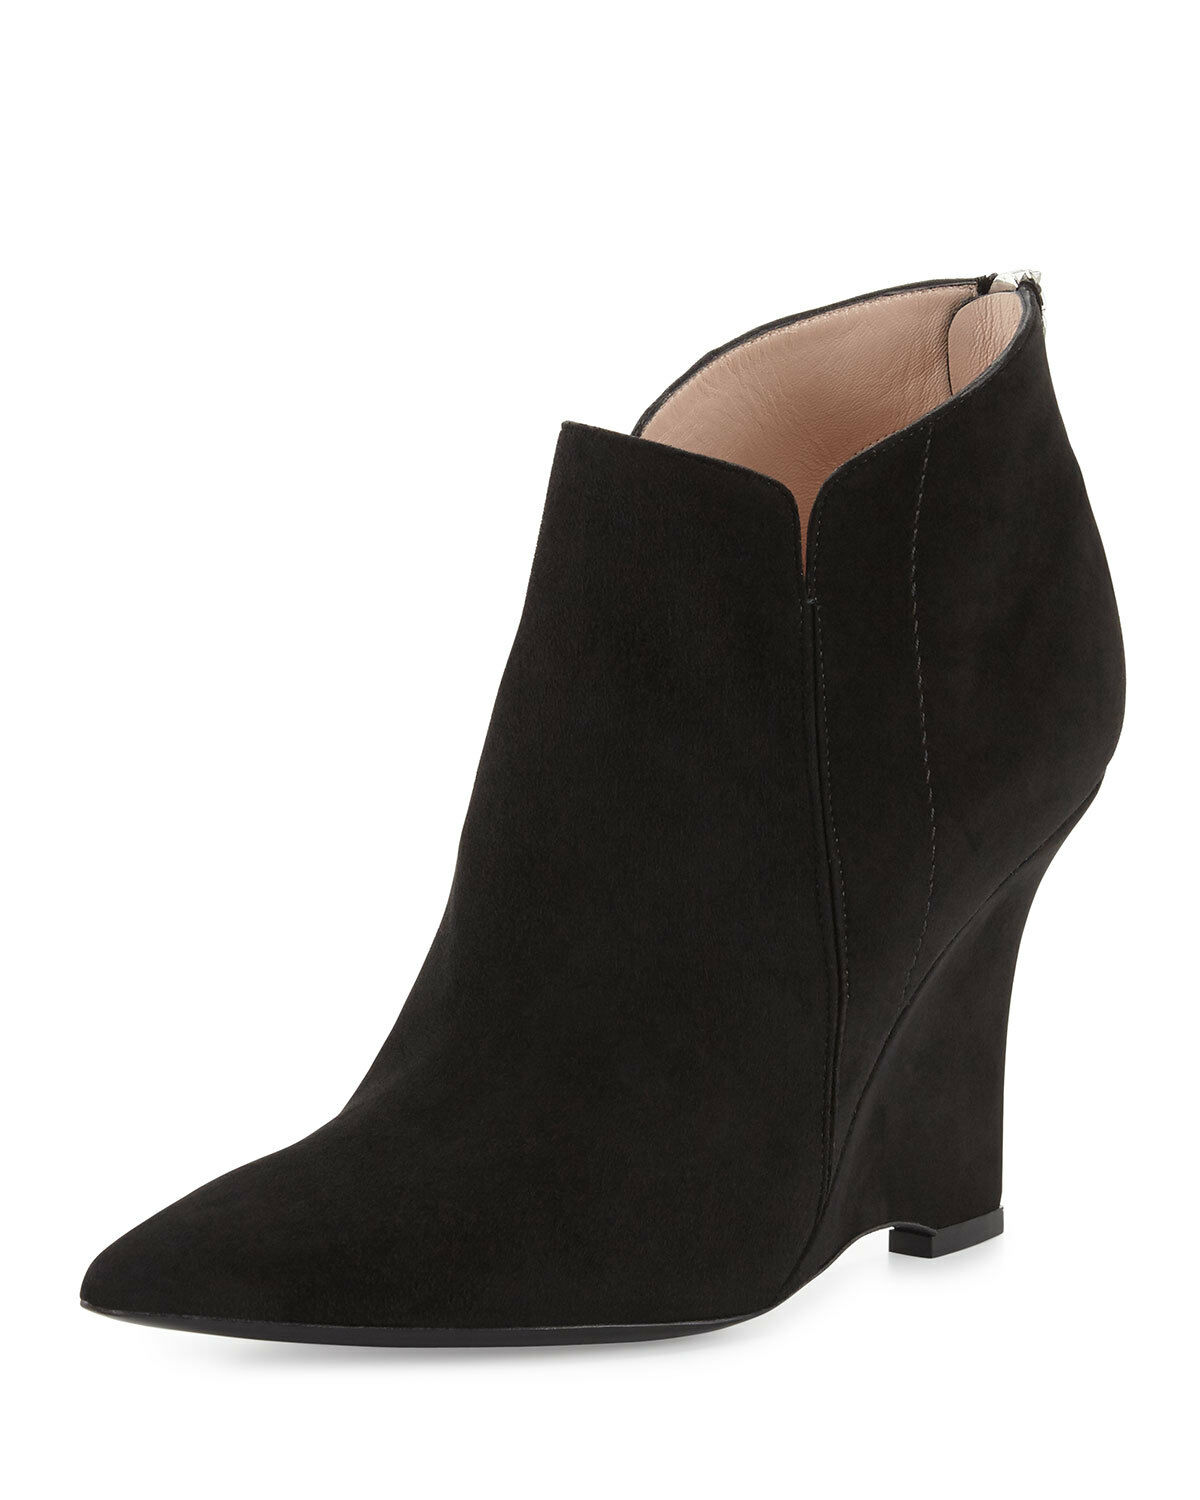 NEW NEW NEW Furla Musa Pointed-Toe ANKLE Bootie Black Suede Women's US 9.5  EU 39.5  675 39914c